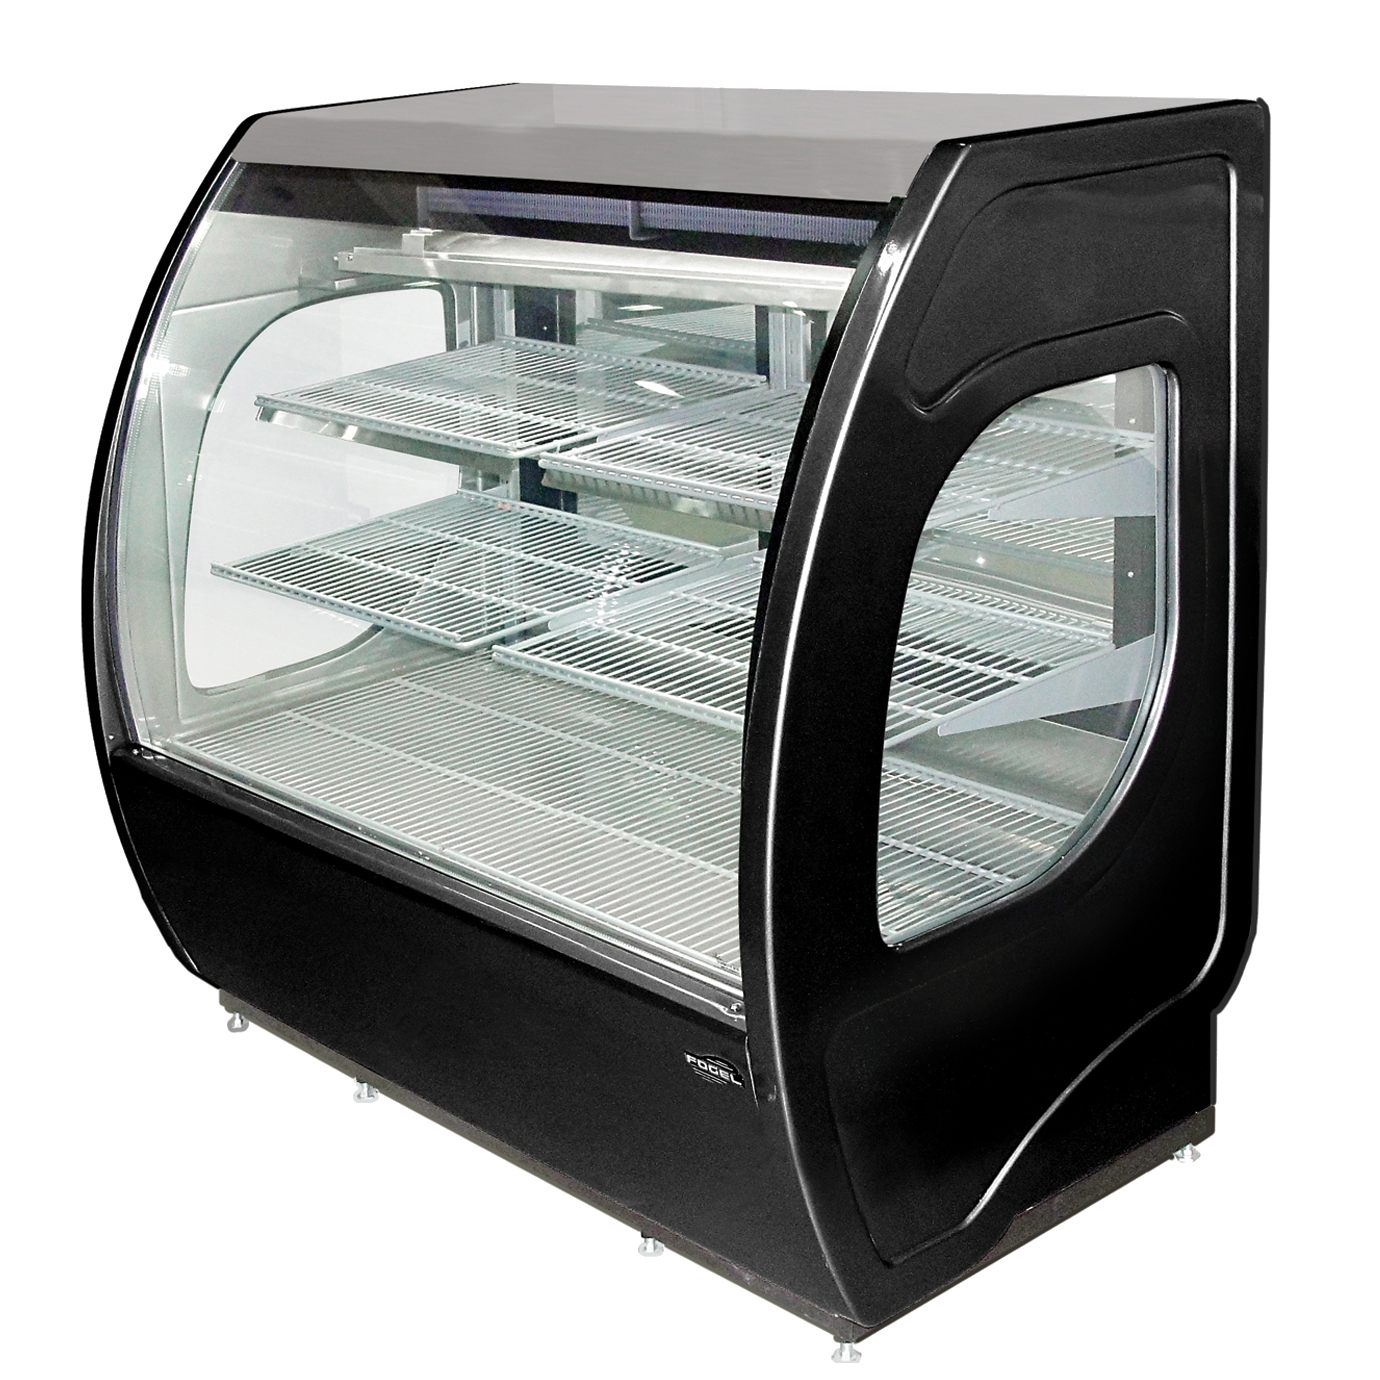 Fogel USA ELITE-4-PF-B display case, refrigerated bakery